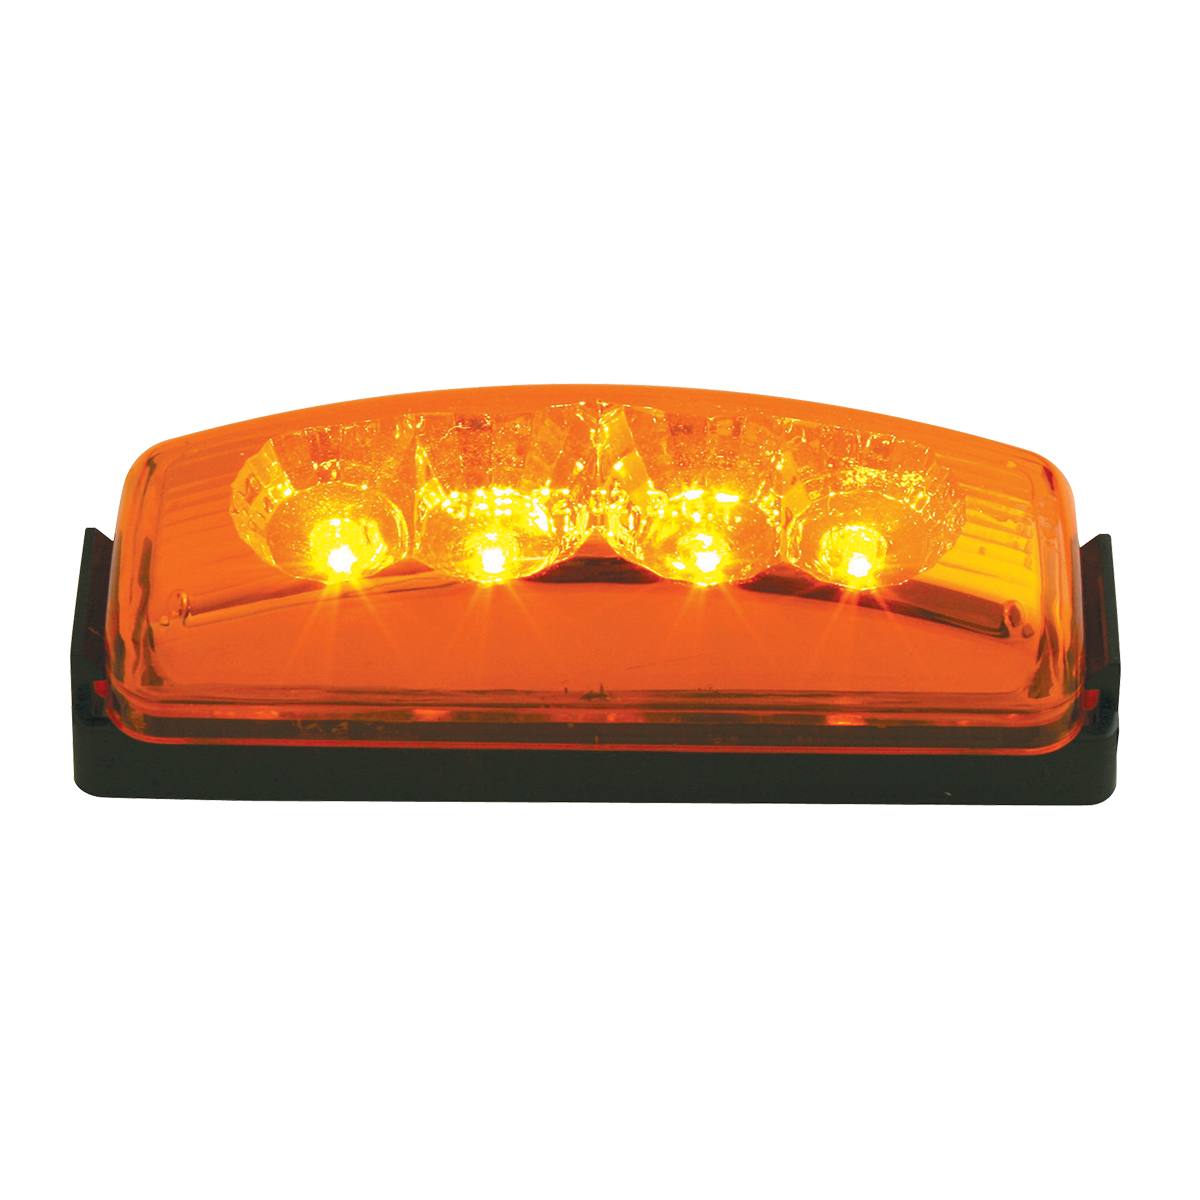 77850 Medium Rectangular Spyder LED Marker Light